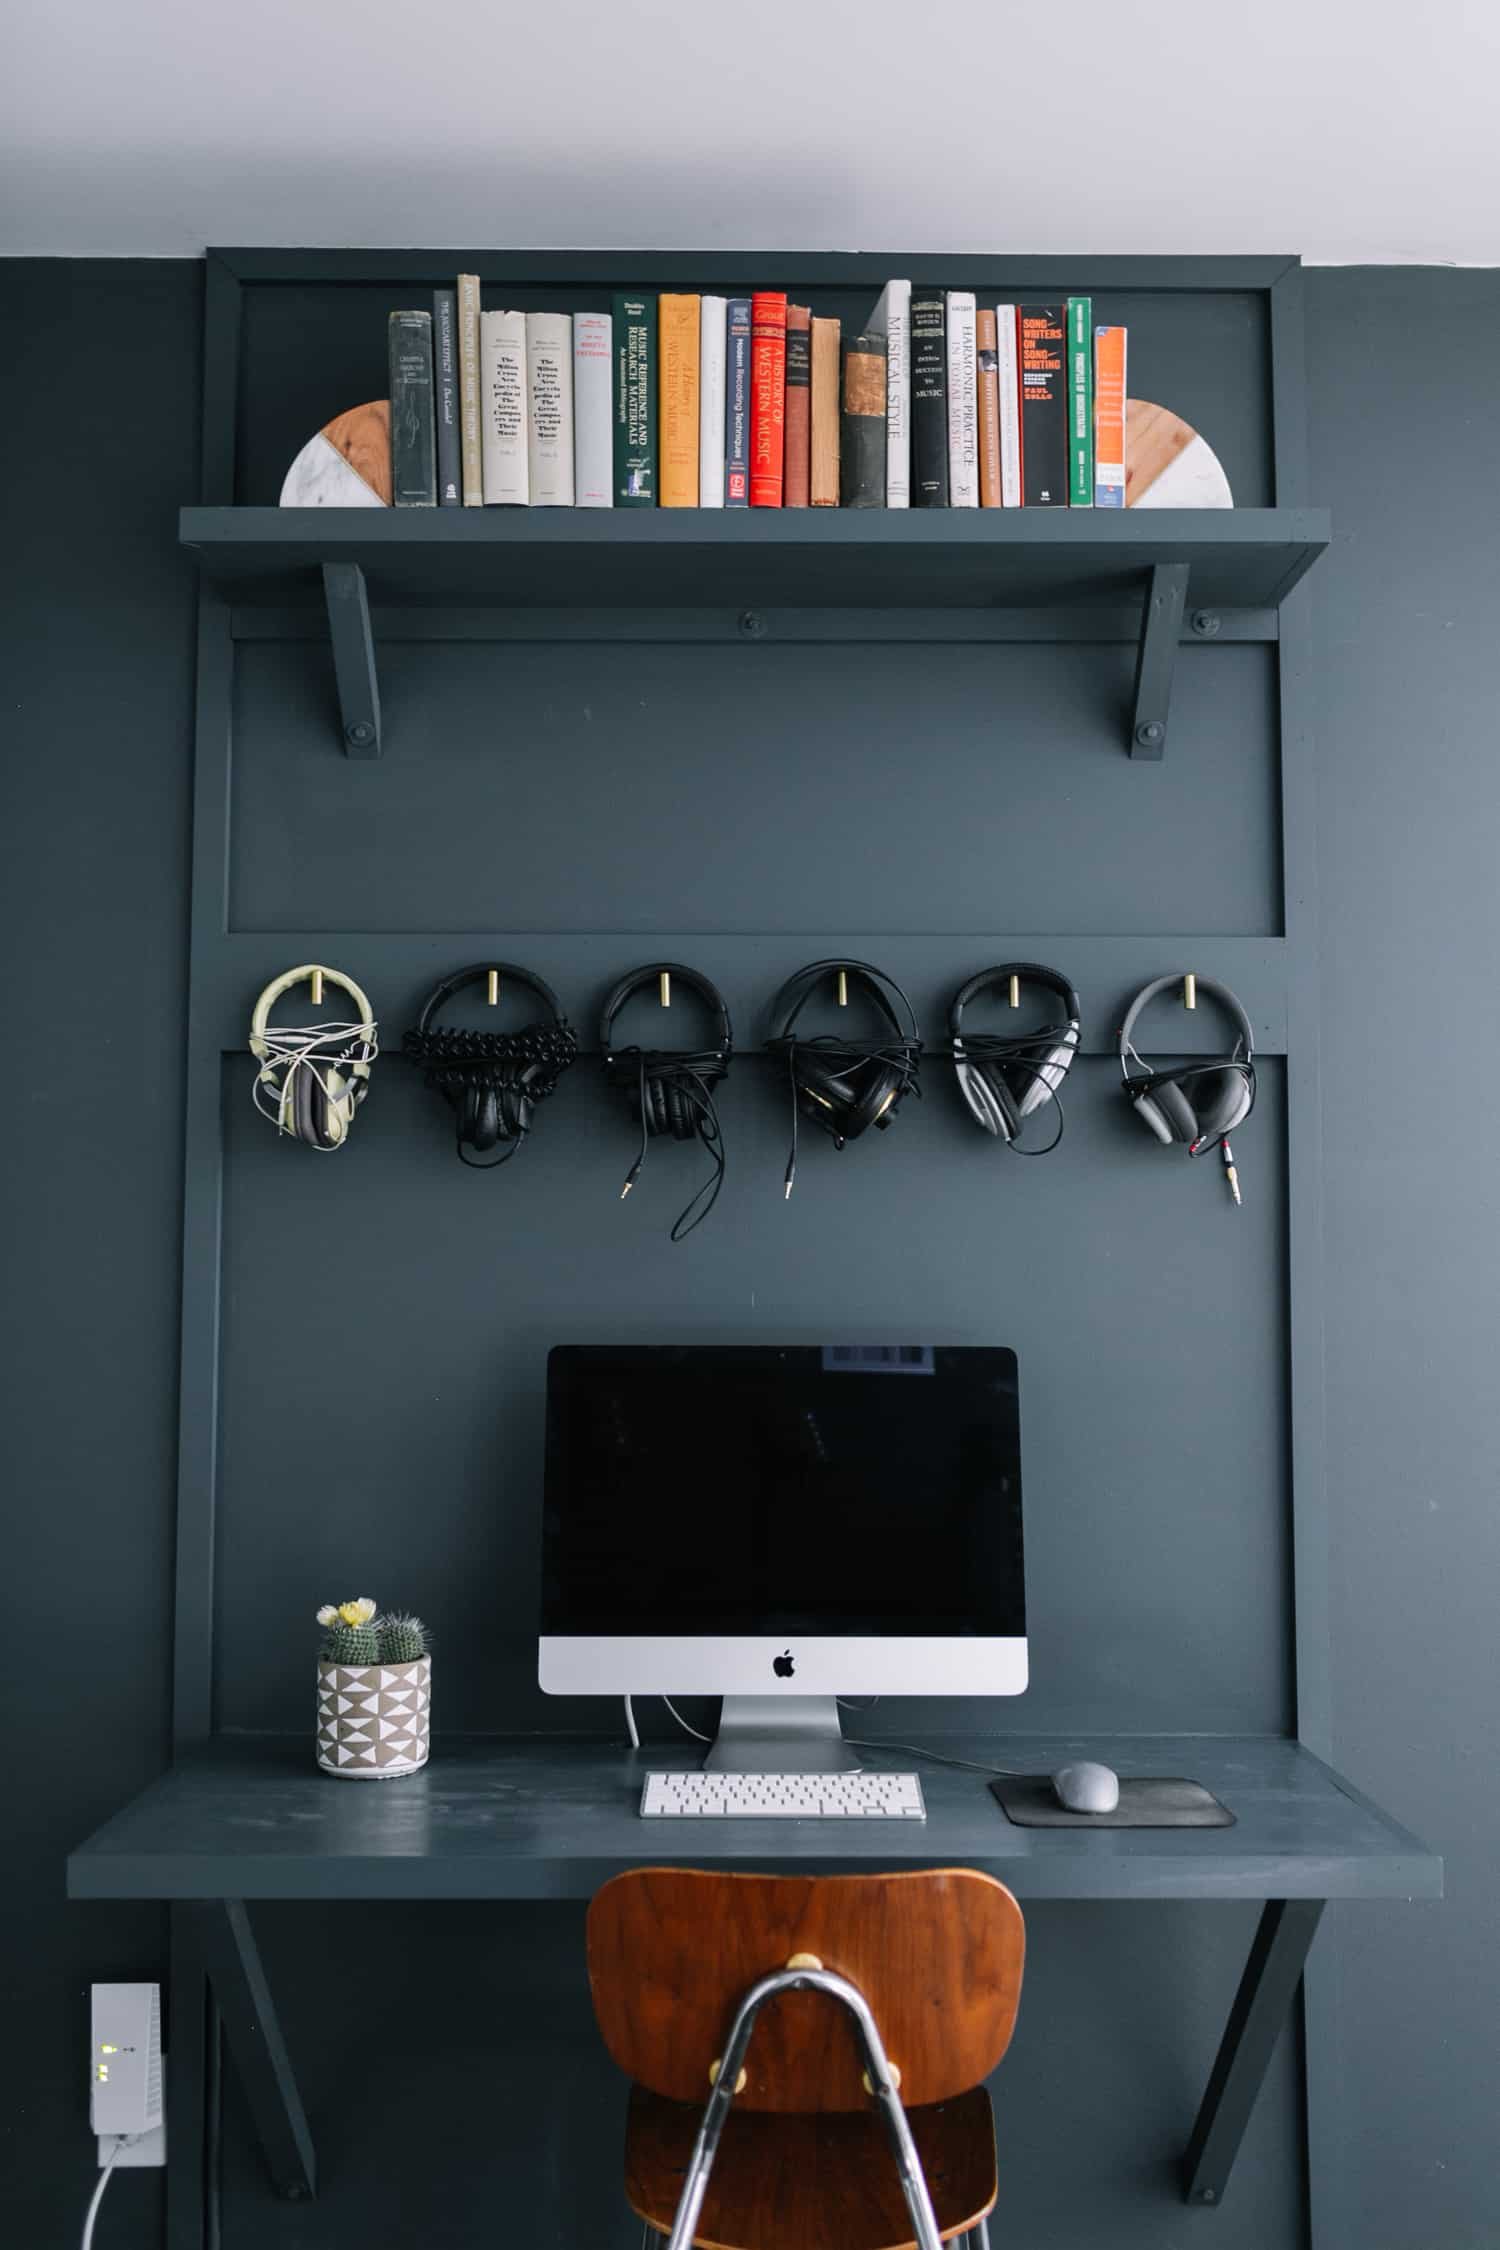 These headphone holders on the wall are functional and genius.